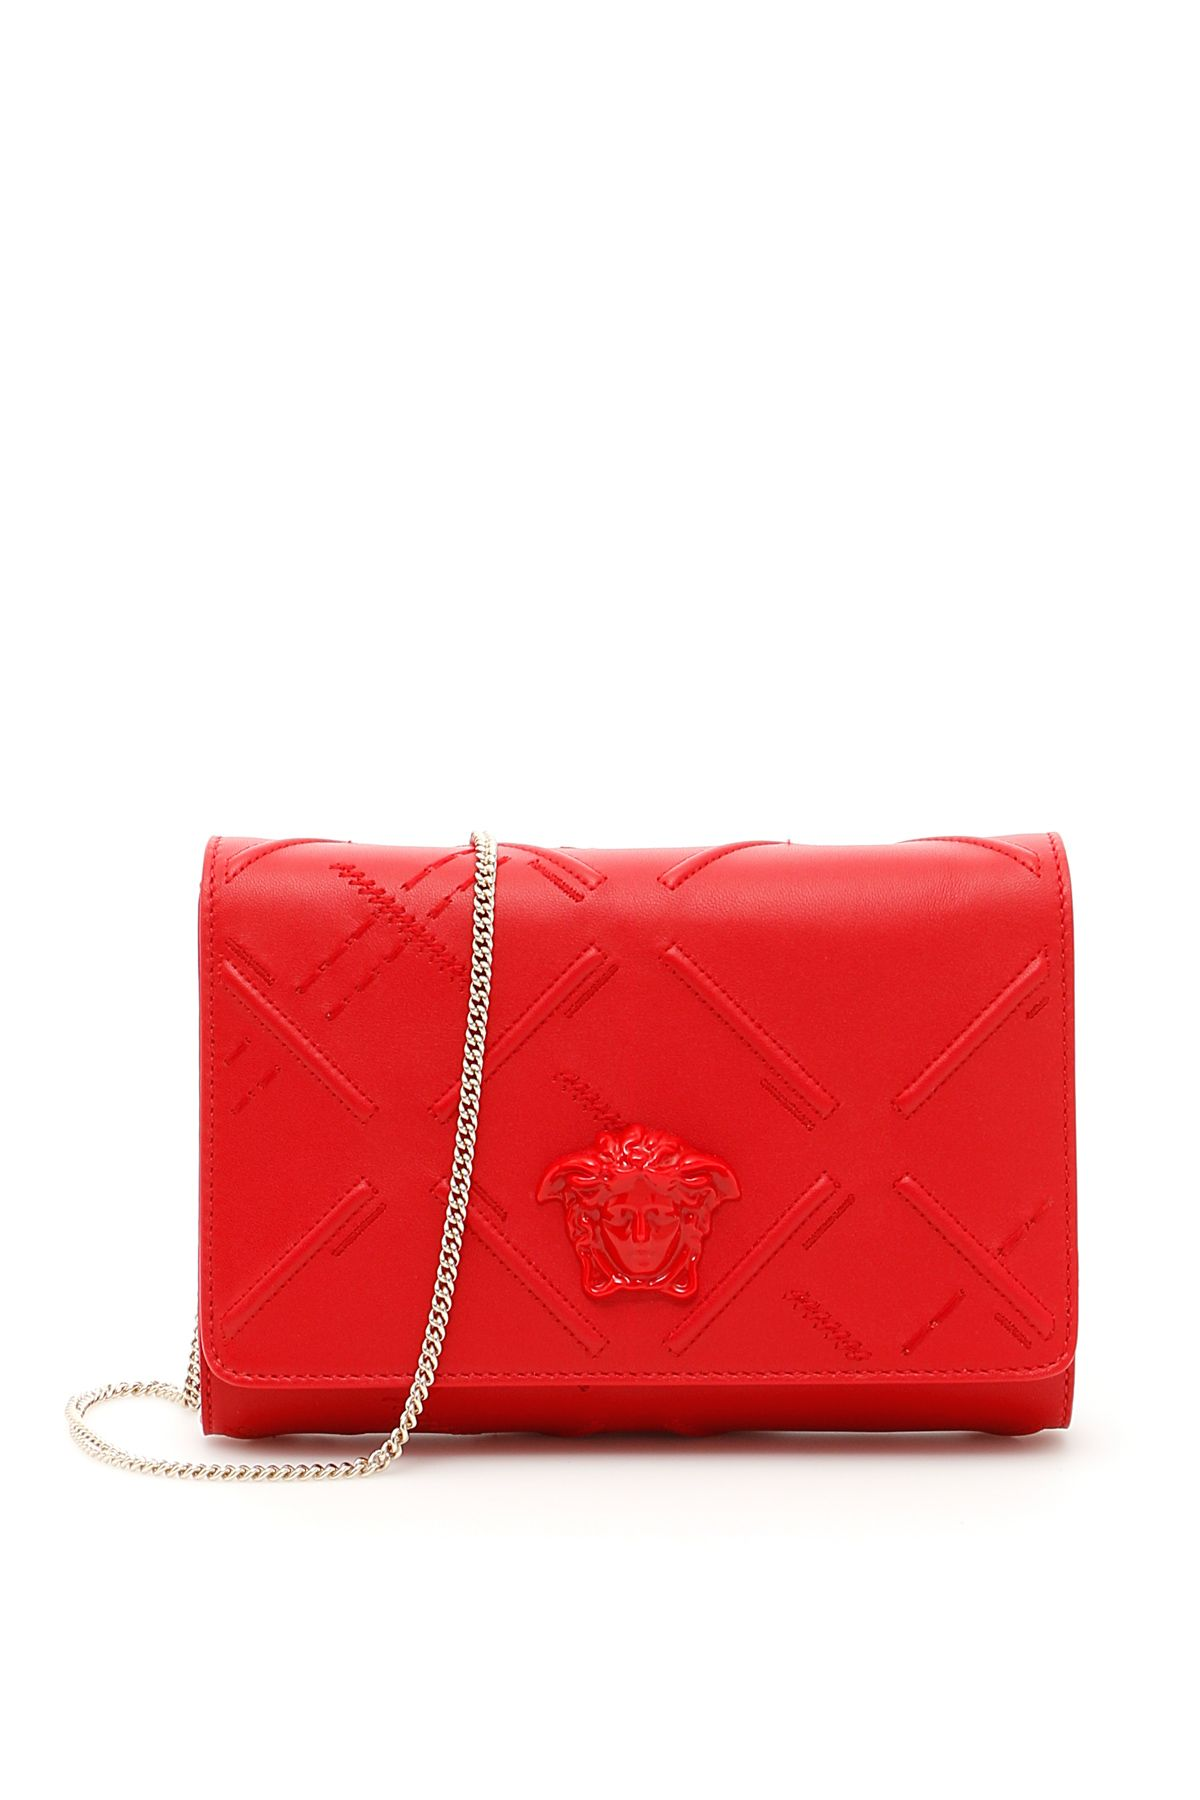 VERSACE NAPPA PALAZZO EVENING CLUTCH WITH EMBROIDERY 2a64360ef24be